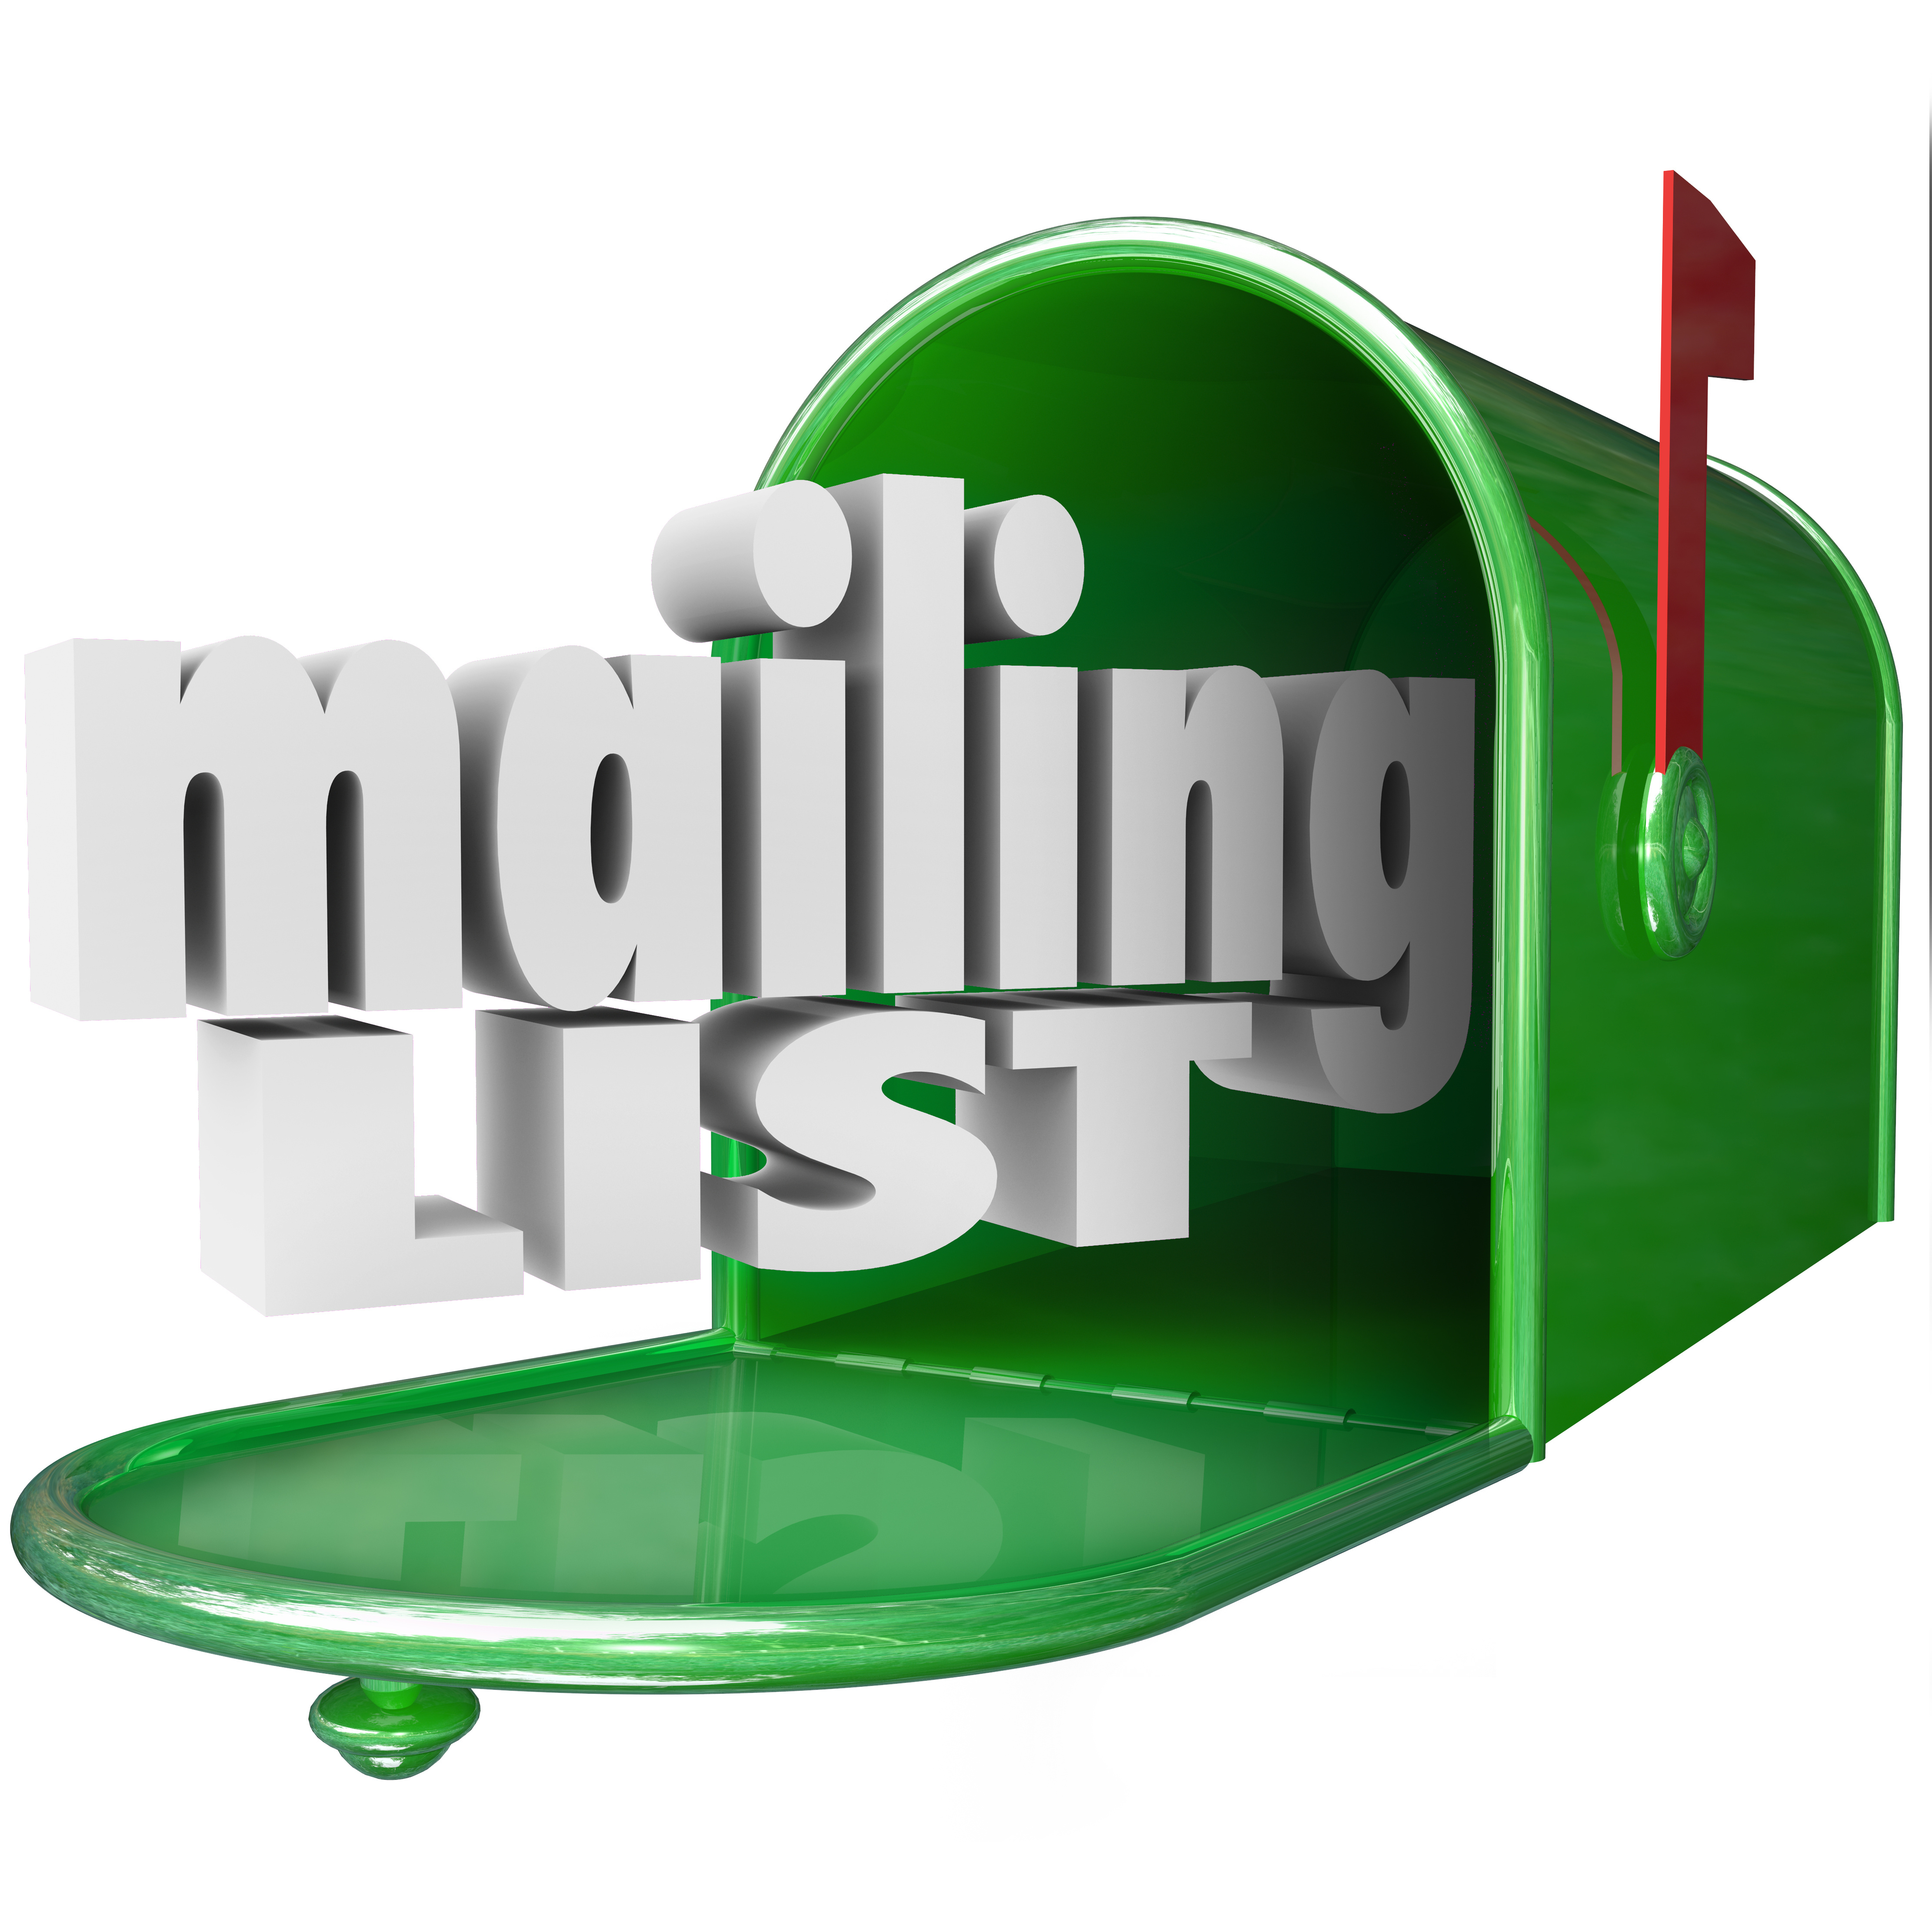 Buy Mailing Lists Marketing Lists Leads Online | Autos Post